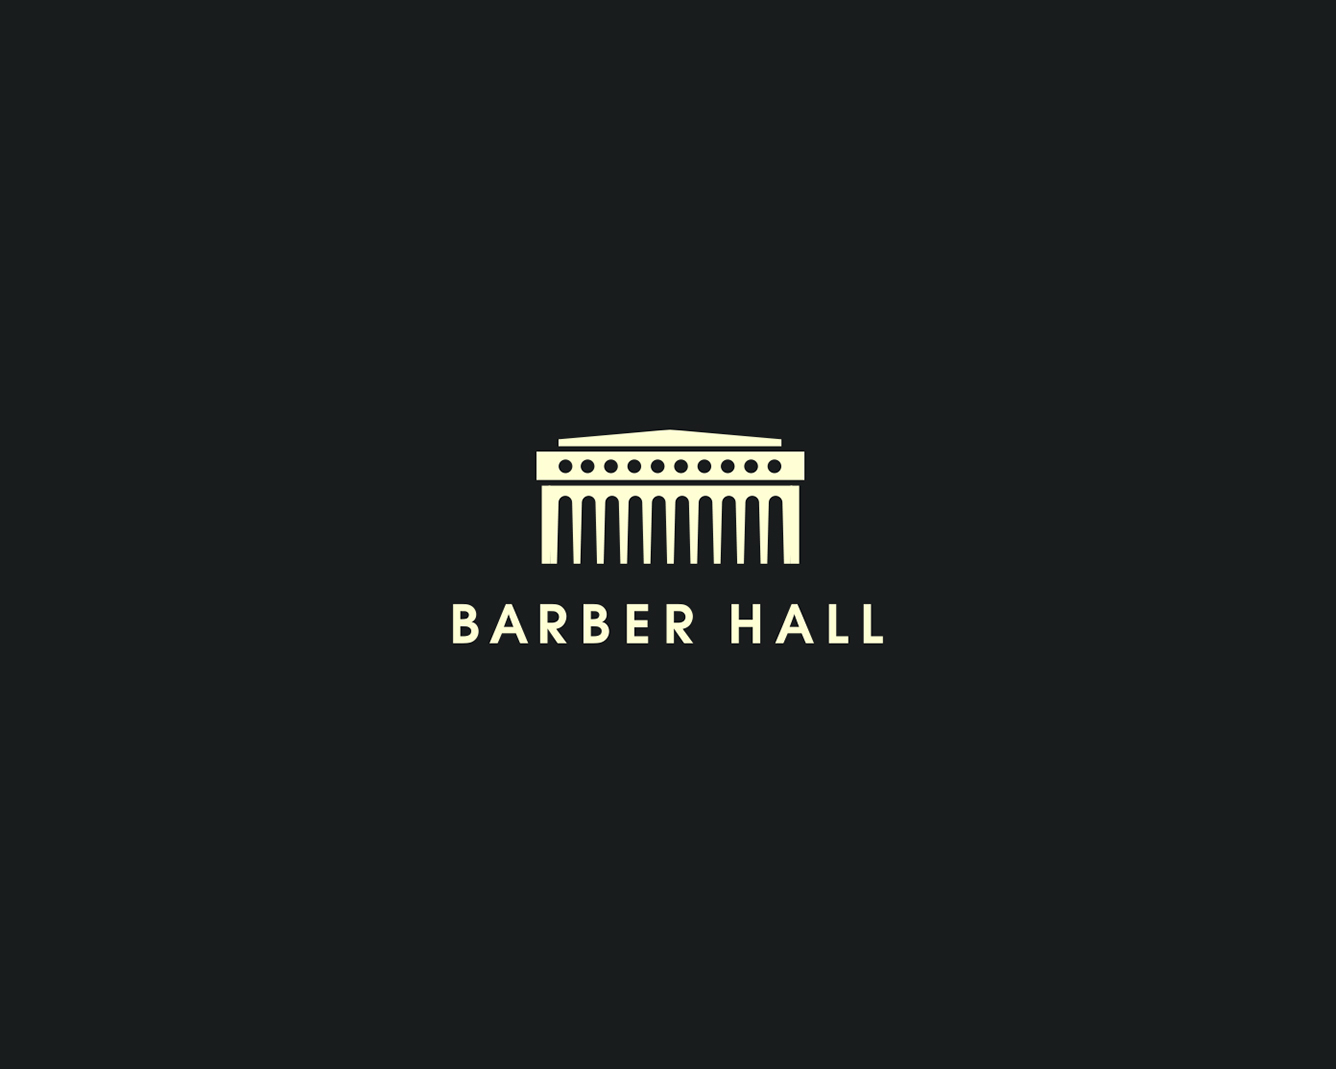 Designer creates logos with hidden meanings - 4